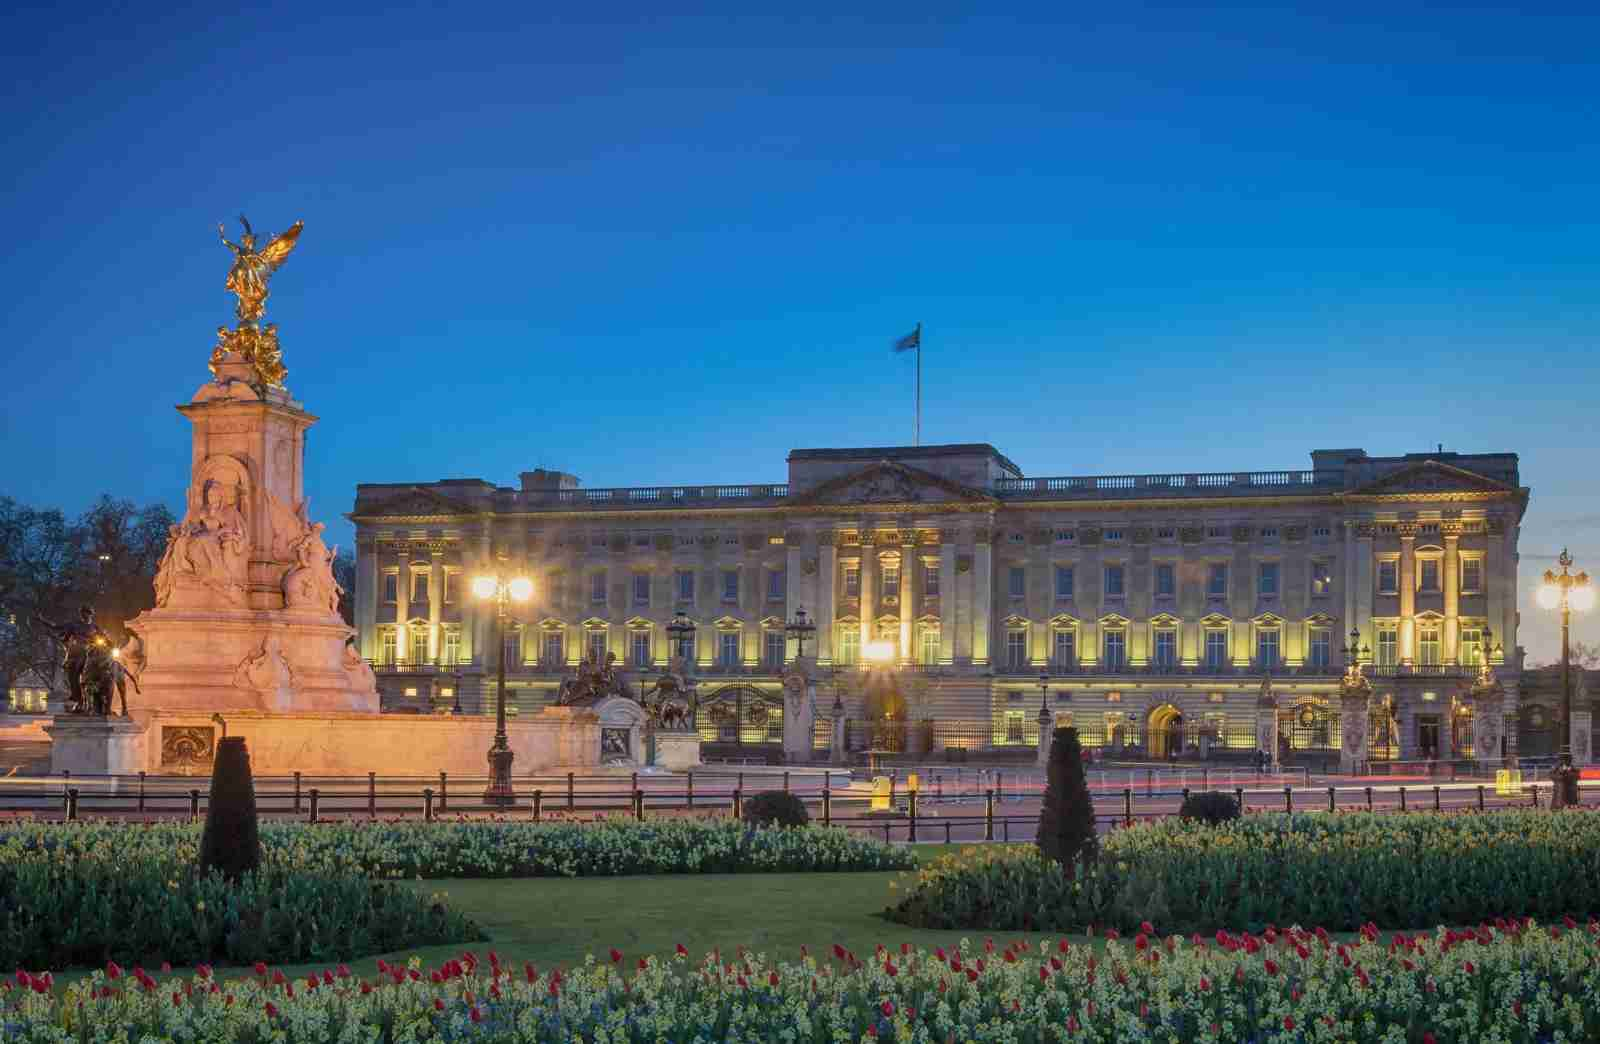 Buckingham Palace. (Photo by Maui01/Getty Images)